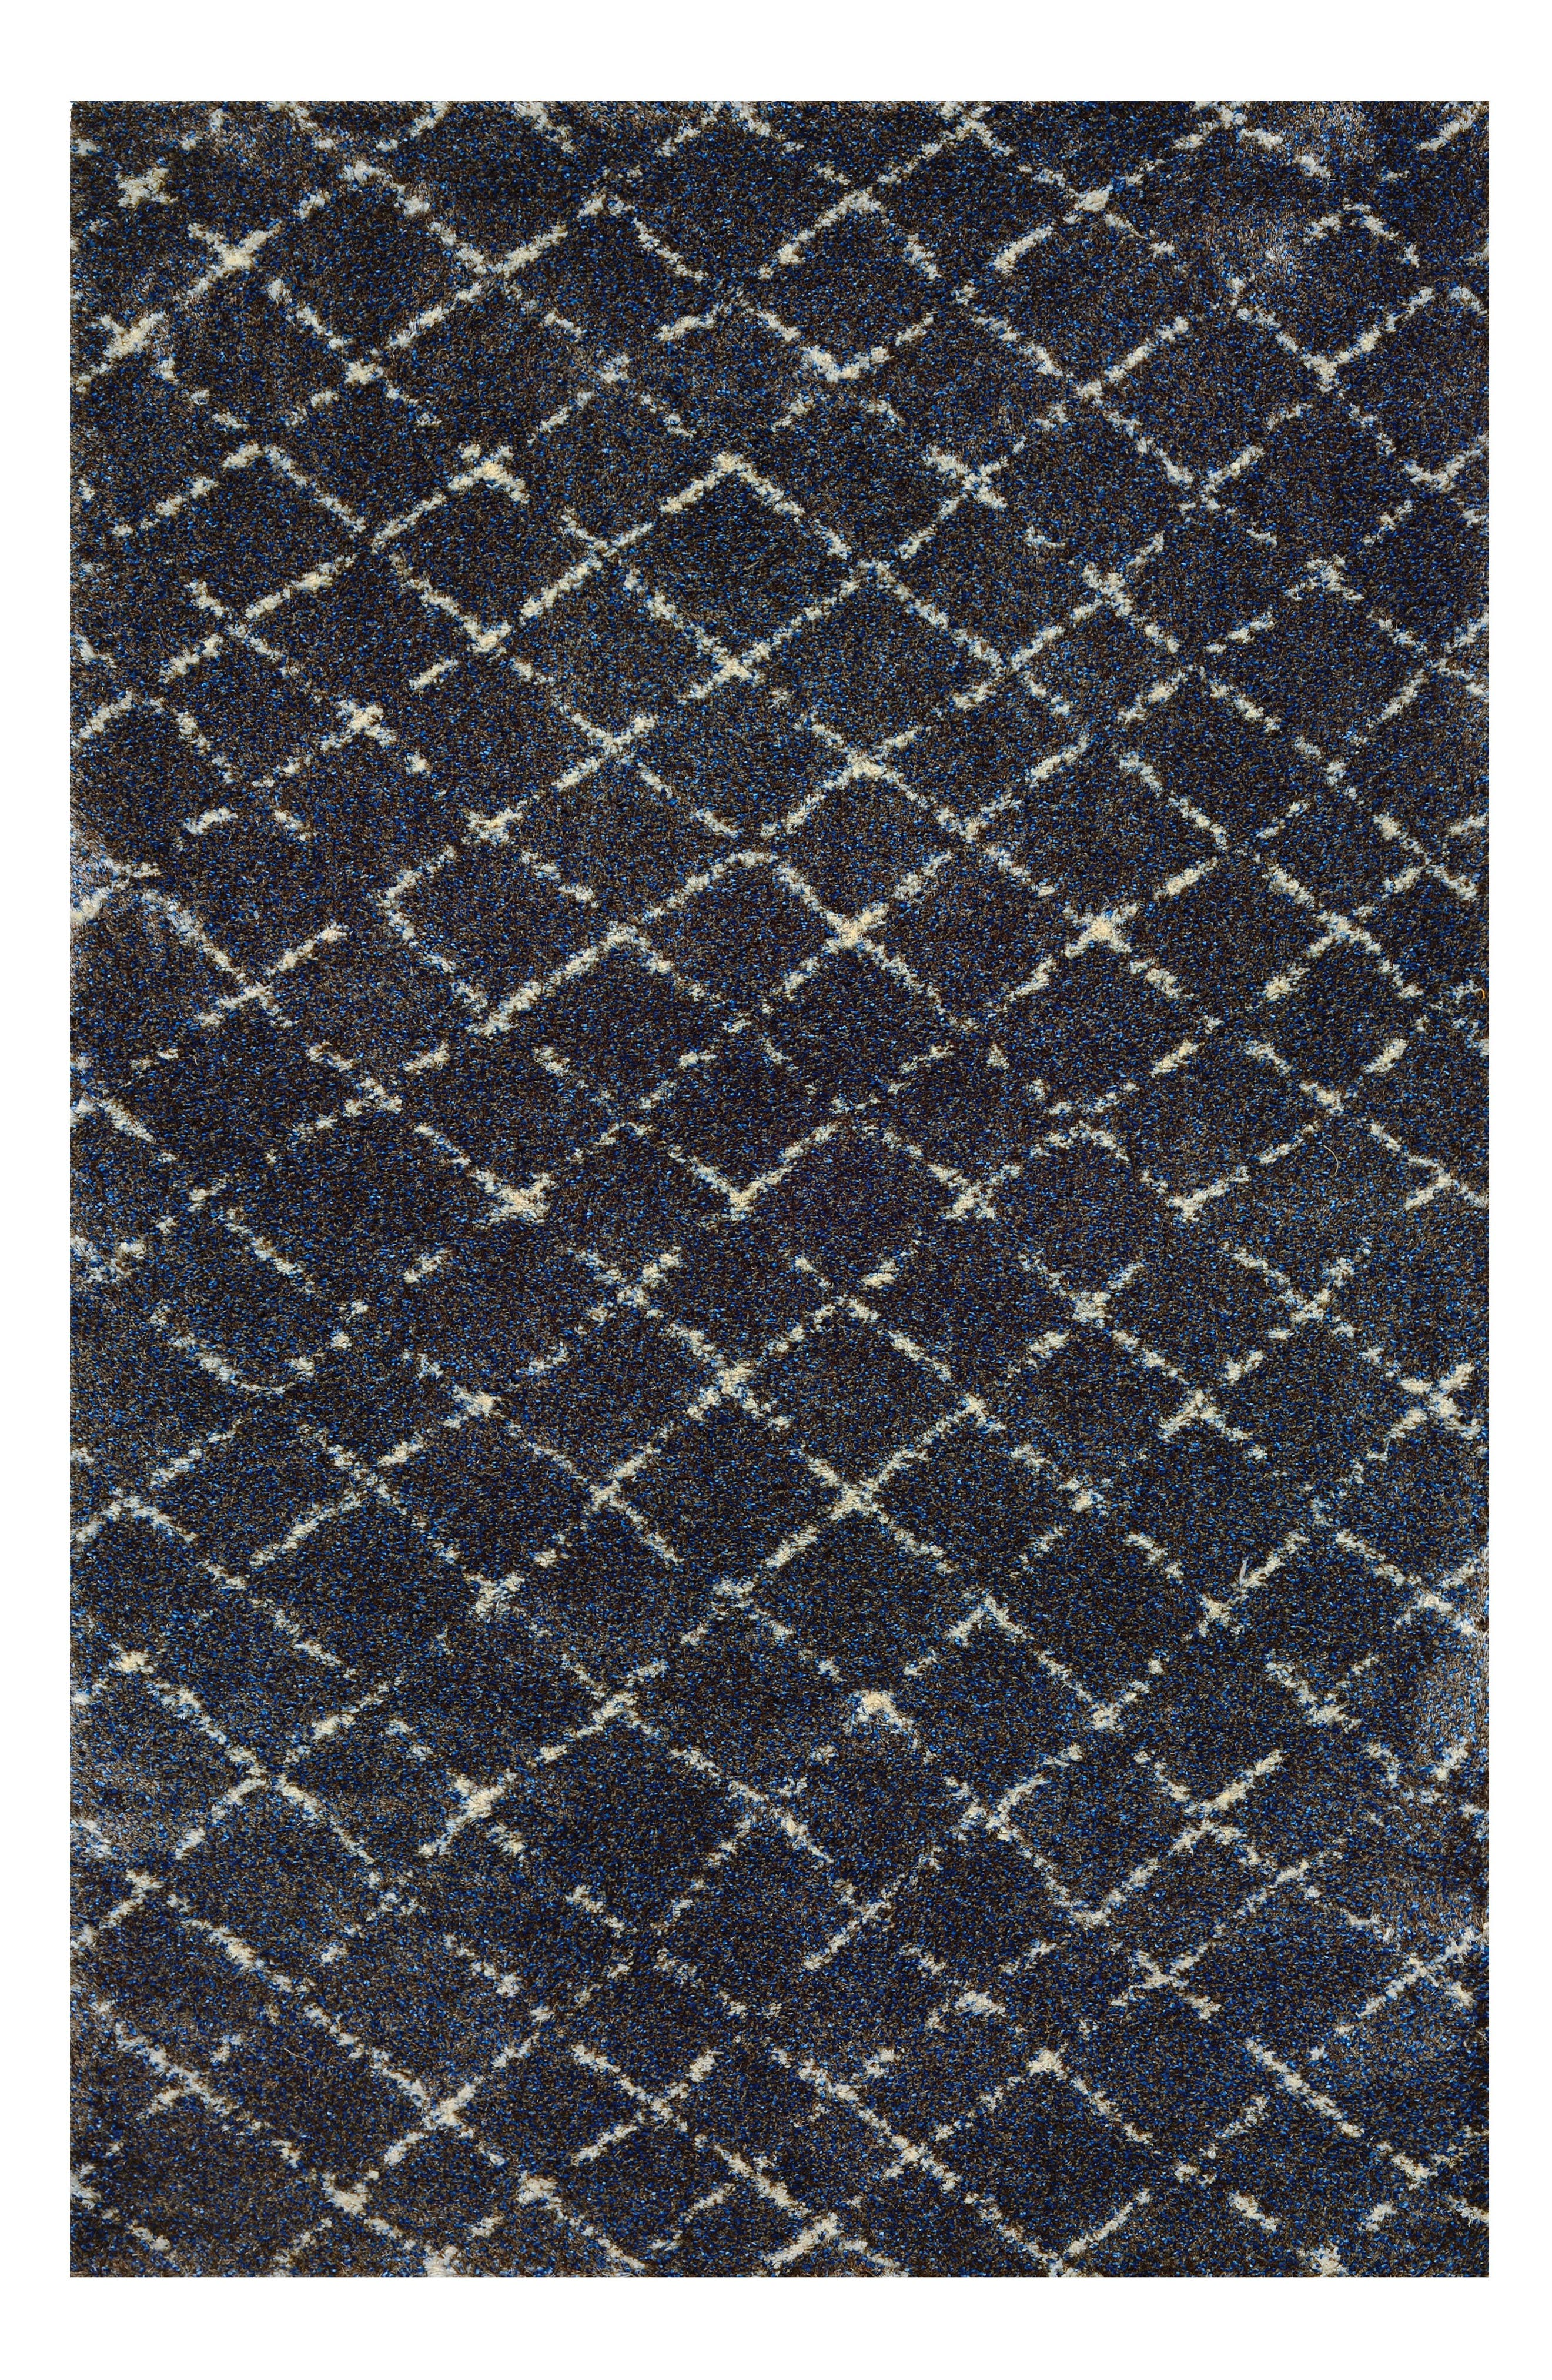 Bromley Gio Area Rug,                         Main,                         color, NAVY/GREY